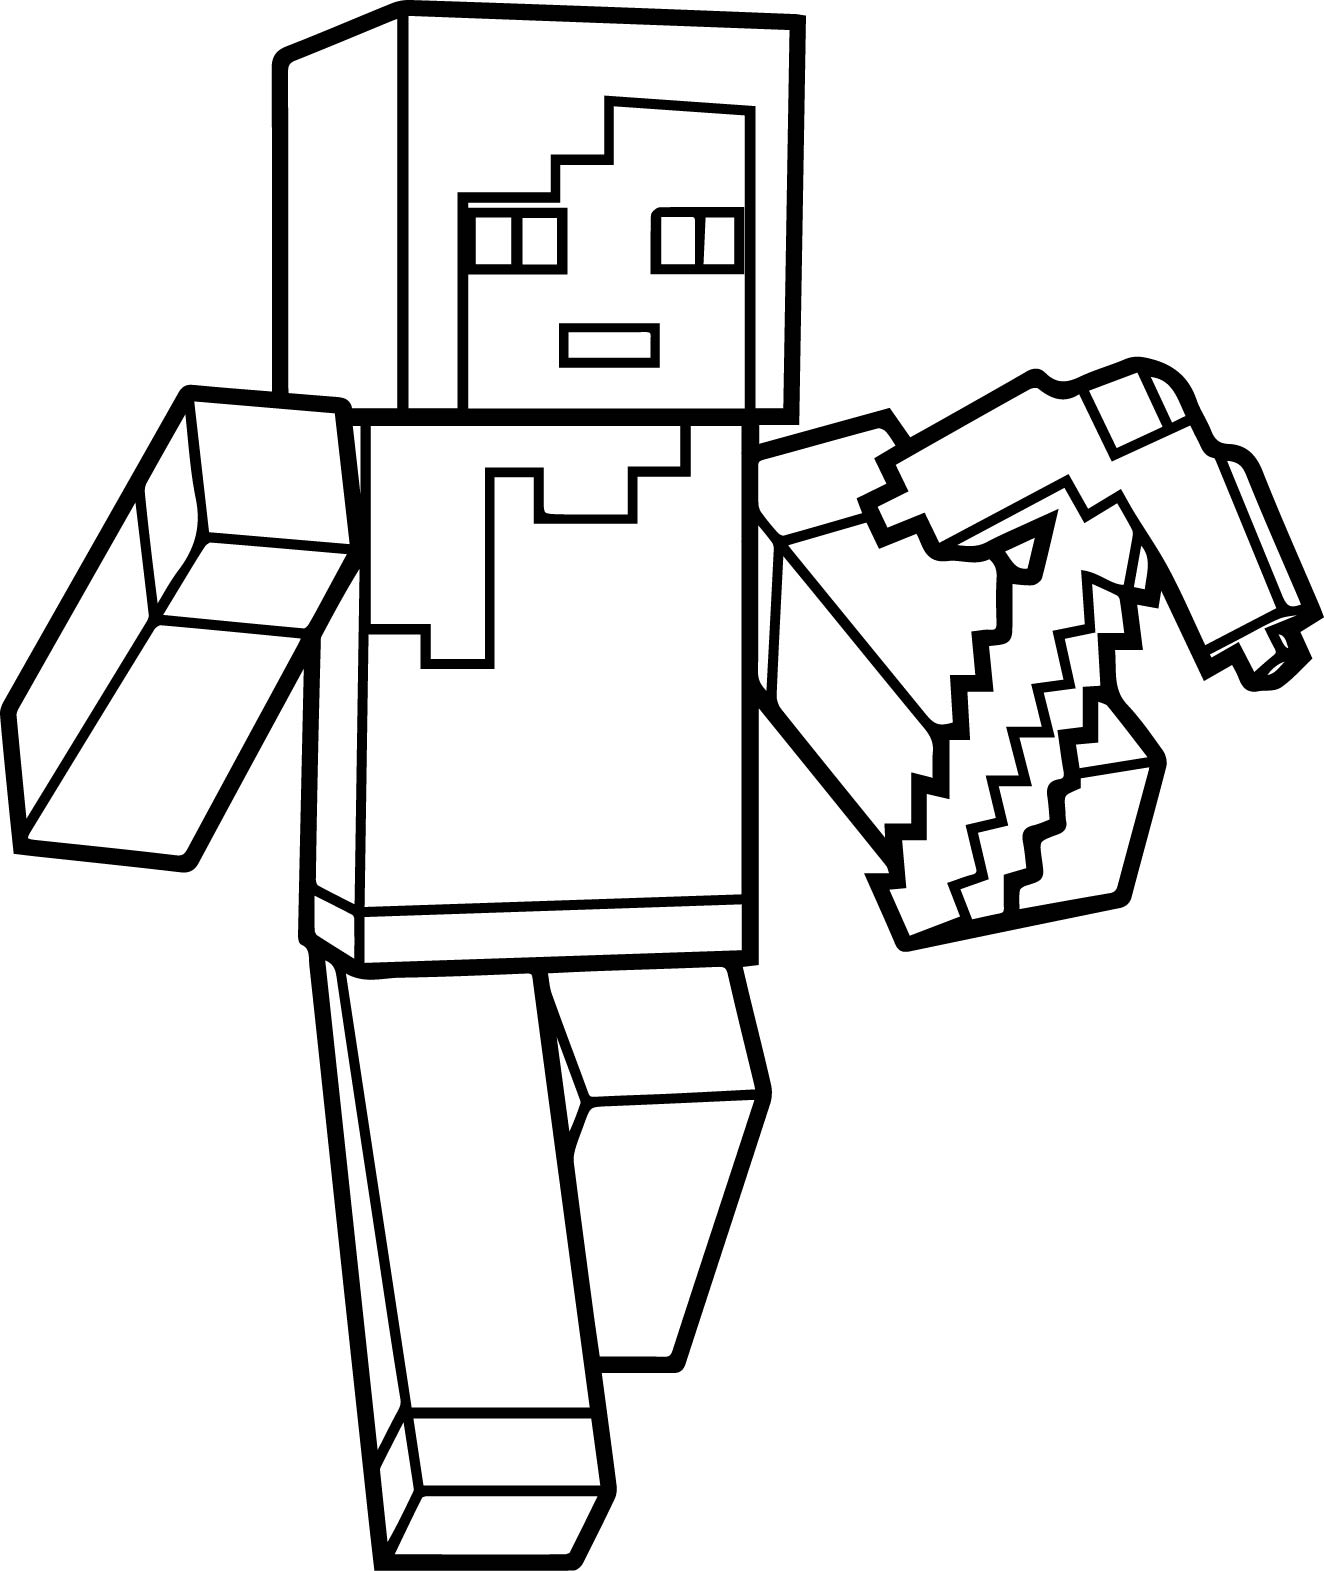 minecraft coloring to print 40 printable minecraft coloring pages coloring print minecraft to